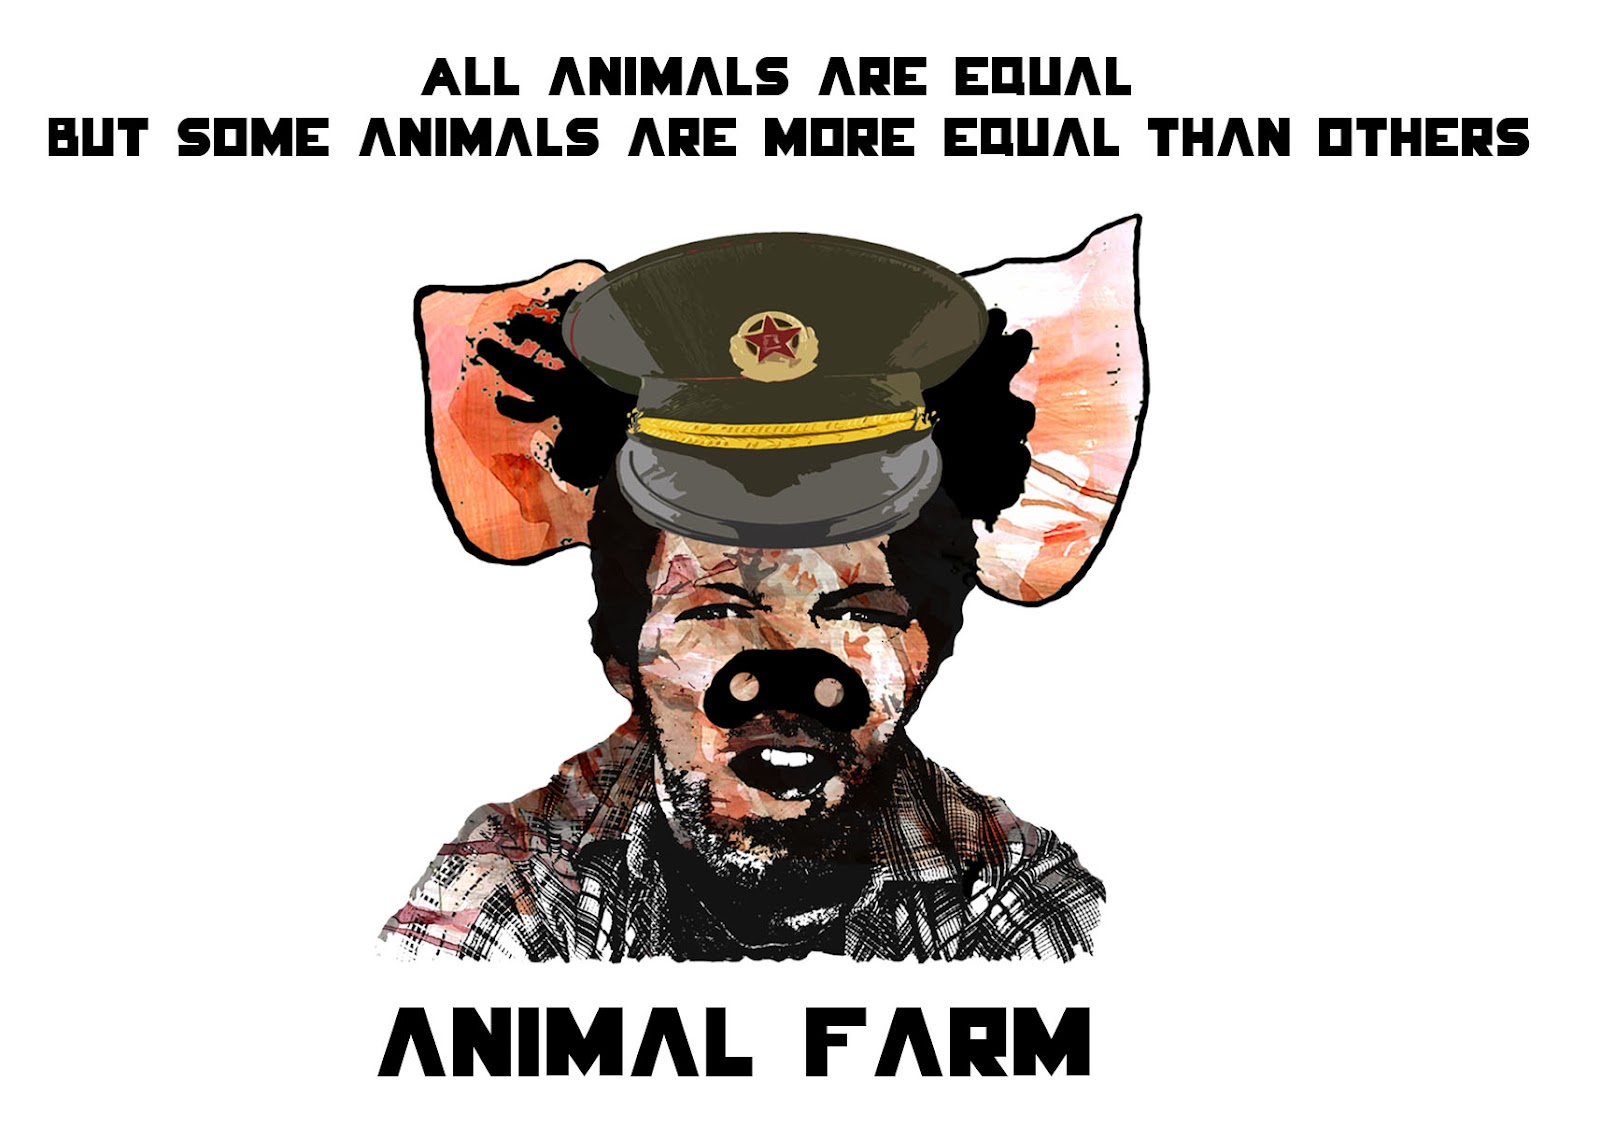 animal farm propaganda thesis Squealer's use of propaganda in animal farm propaganda is a word that is often thrown around by individuals -- especially today we often hear about people using propaganda when it comes to elections and candidates oftentimes, candidates will use propaganda in order to hurt the other candidate, never help the other candidate it's no wonder.